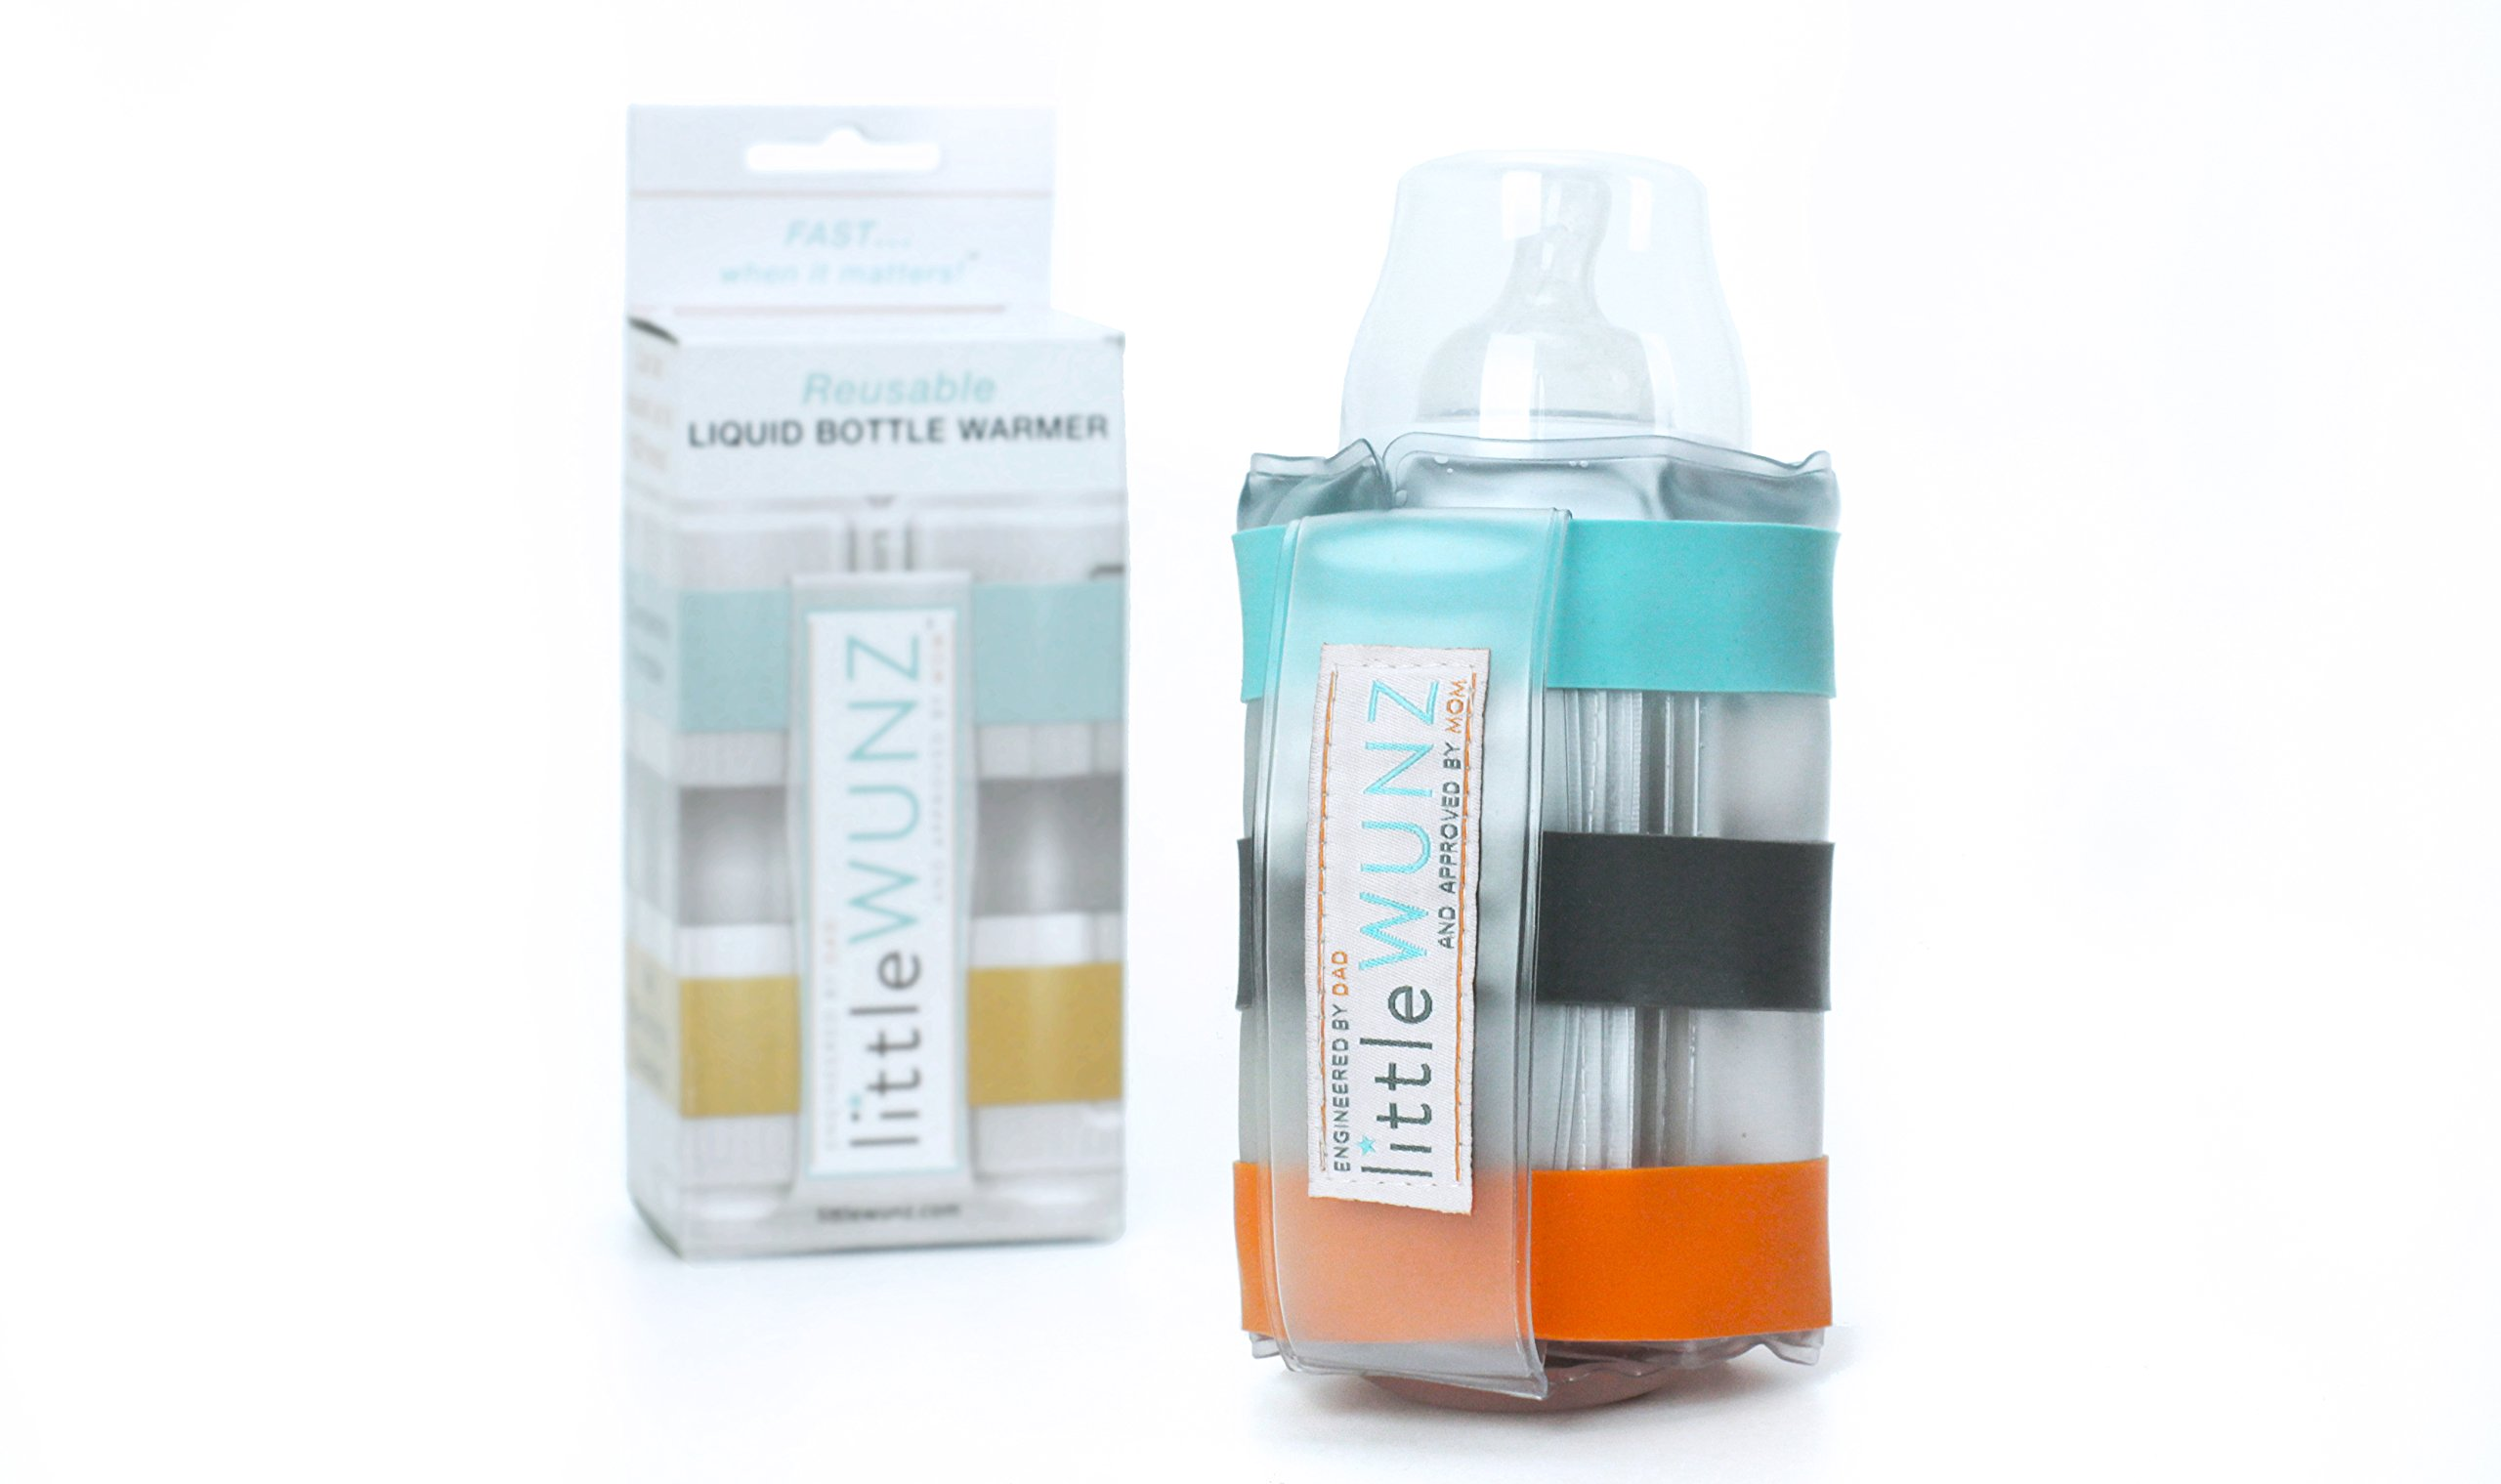 LITTLEWUNZ Reusable Liquid Bottle Warmer by littleWUNZ (Image #1)